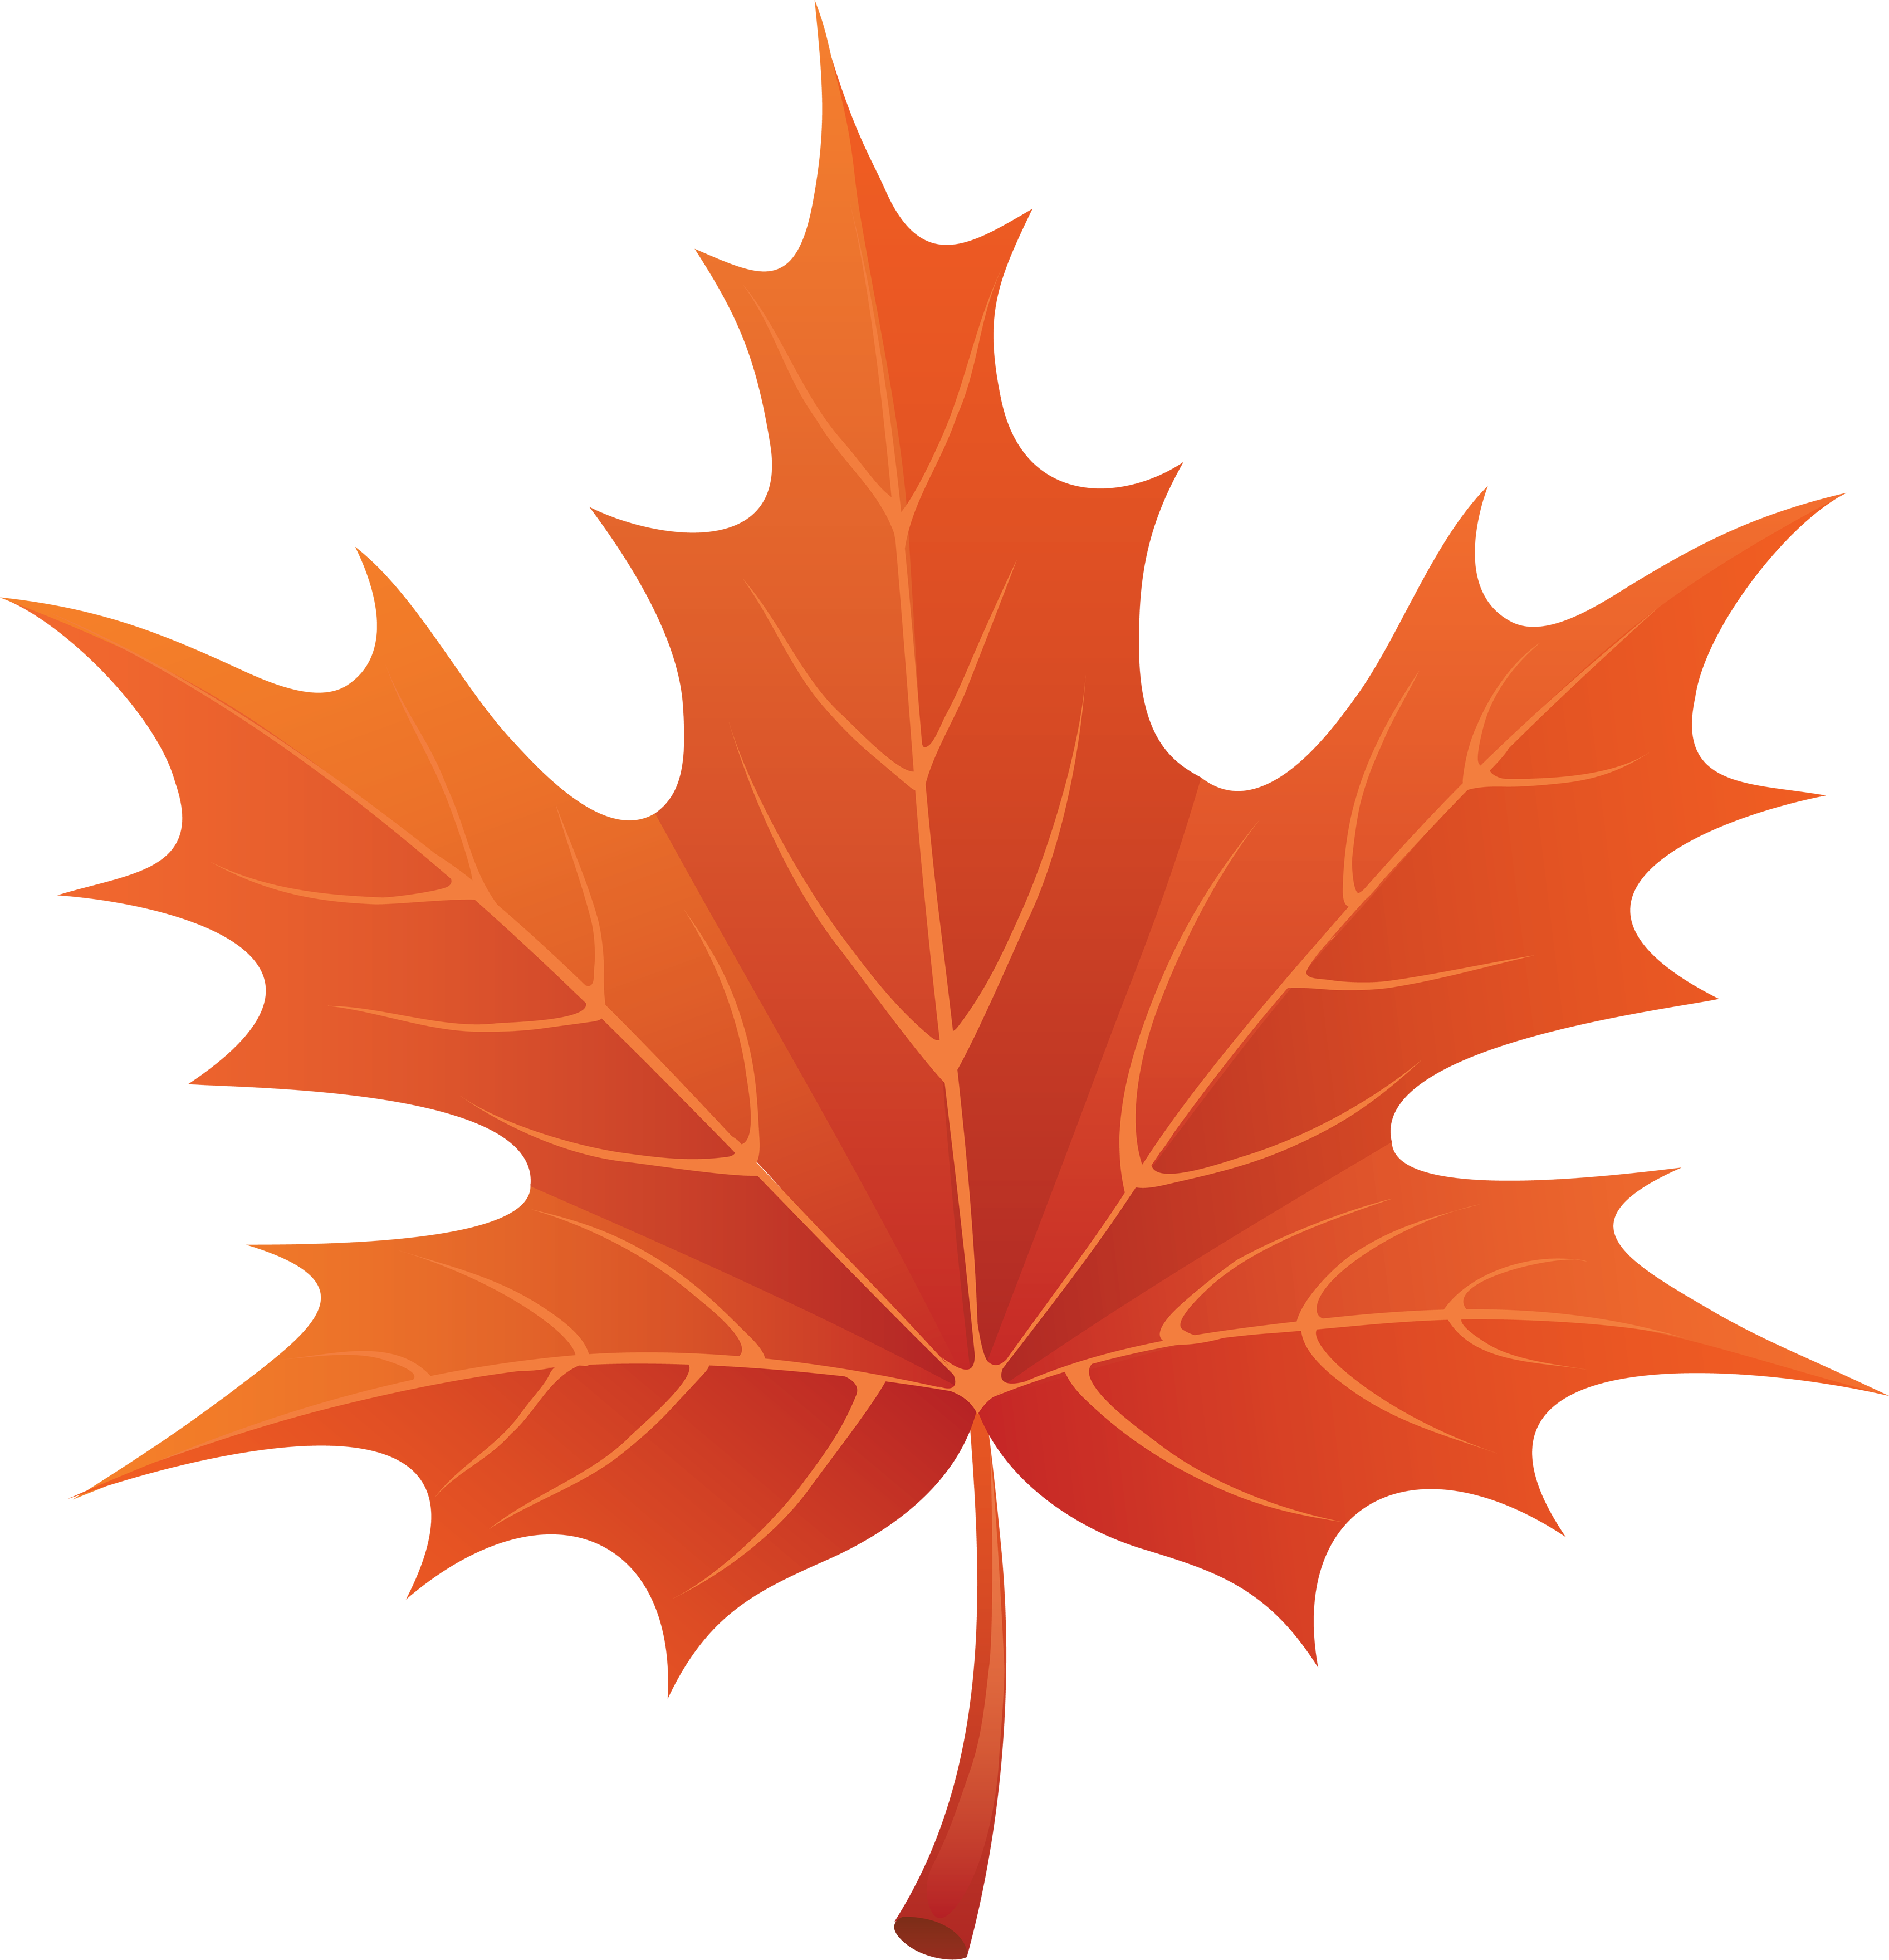 Download Autumn Fall Leaves Clip Art HQ PNG Image.